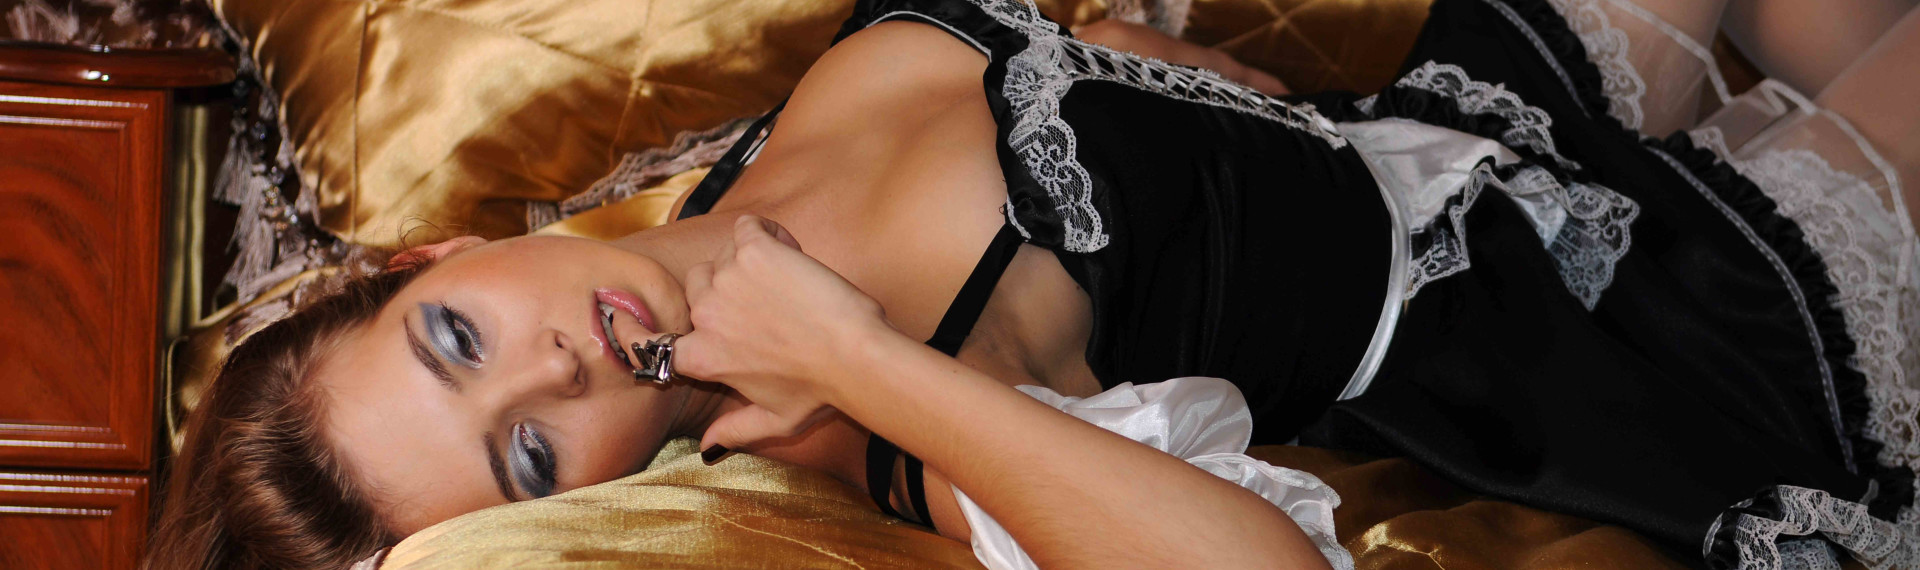 Sexy Maid in Wroclaw for Stag Dos | Pissup Tours